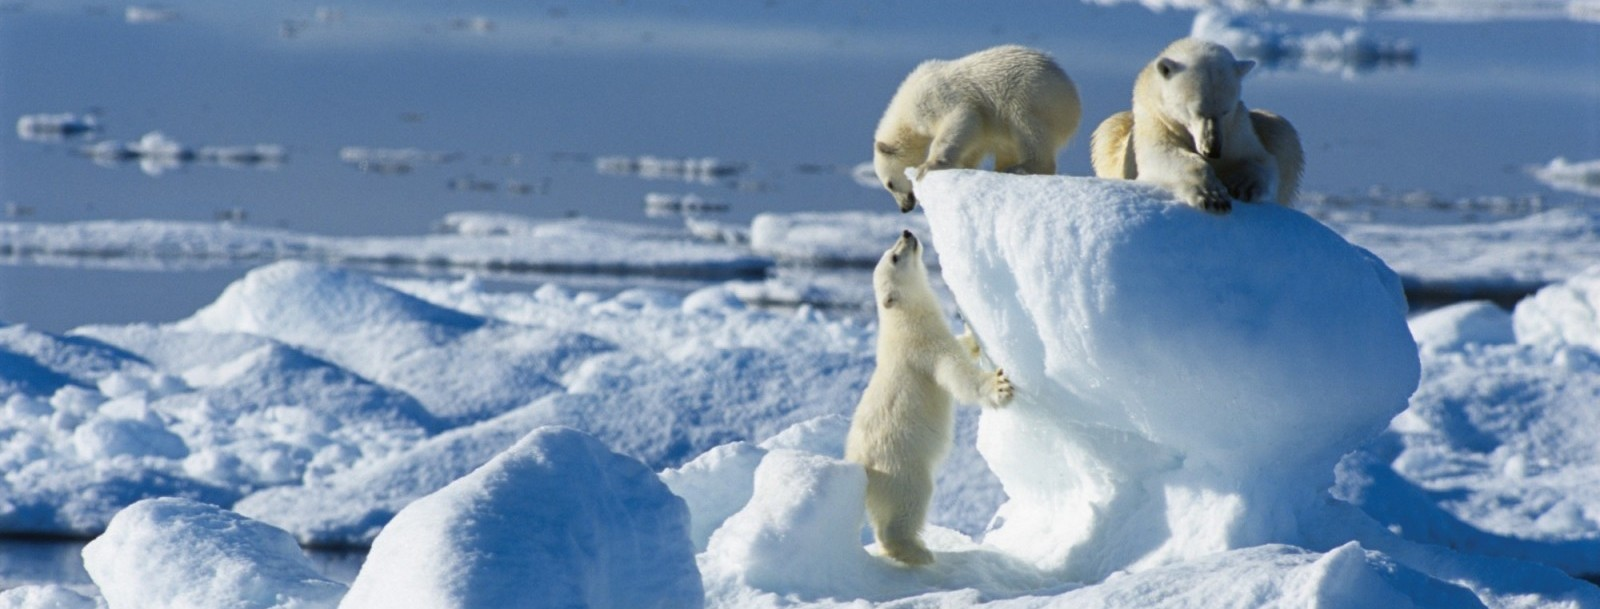 Arctic Wildlife Safari Expeditions - Bellingham Safaris